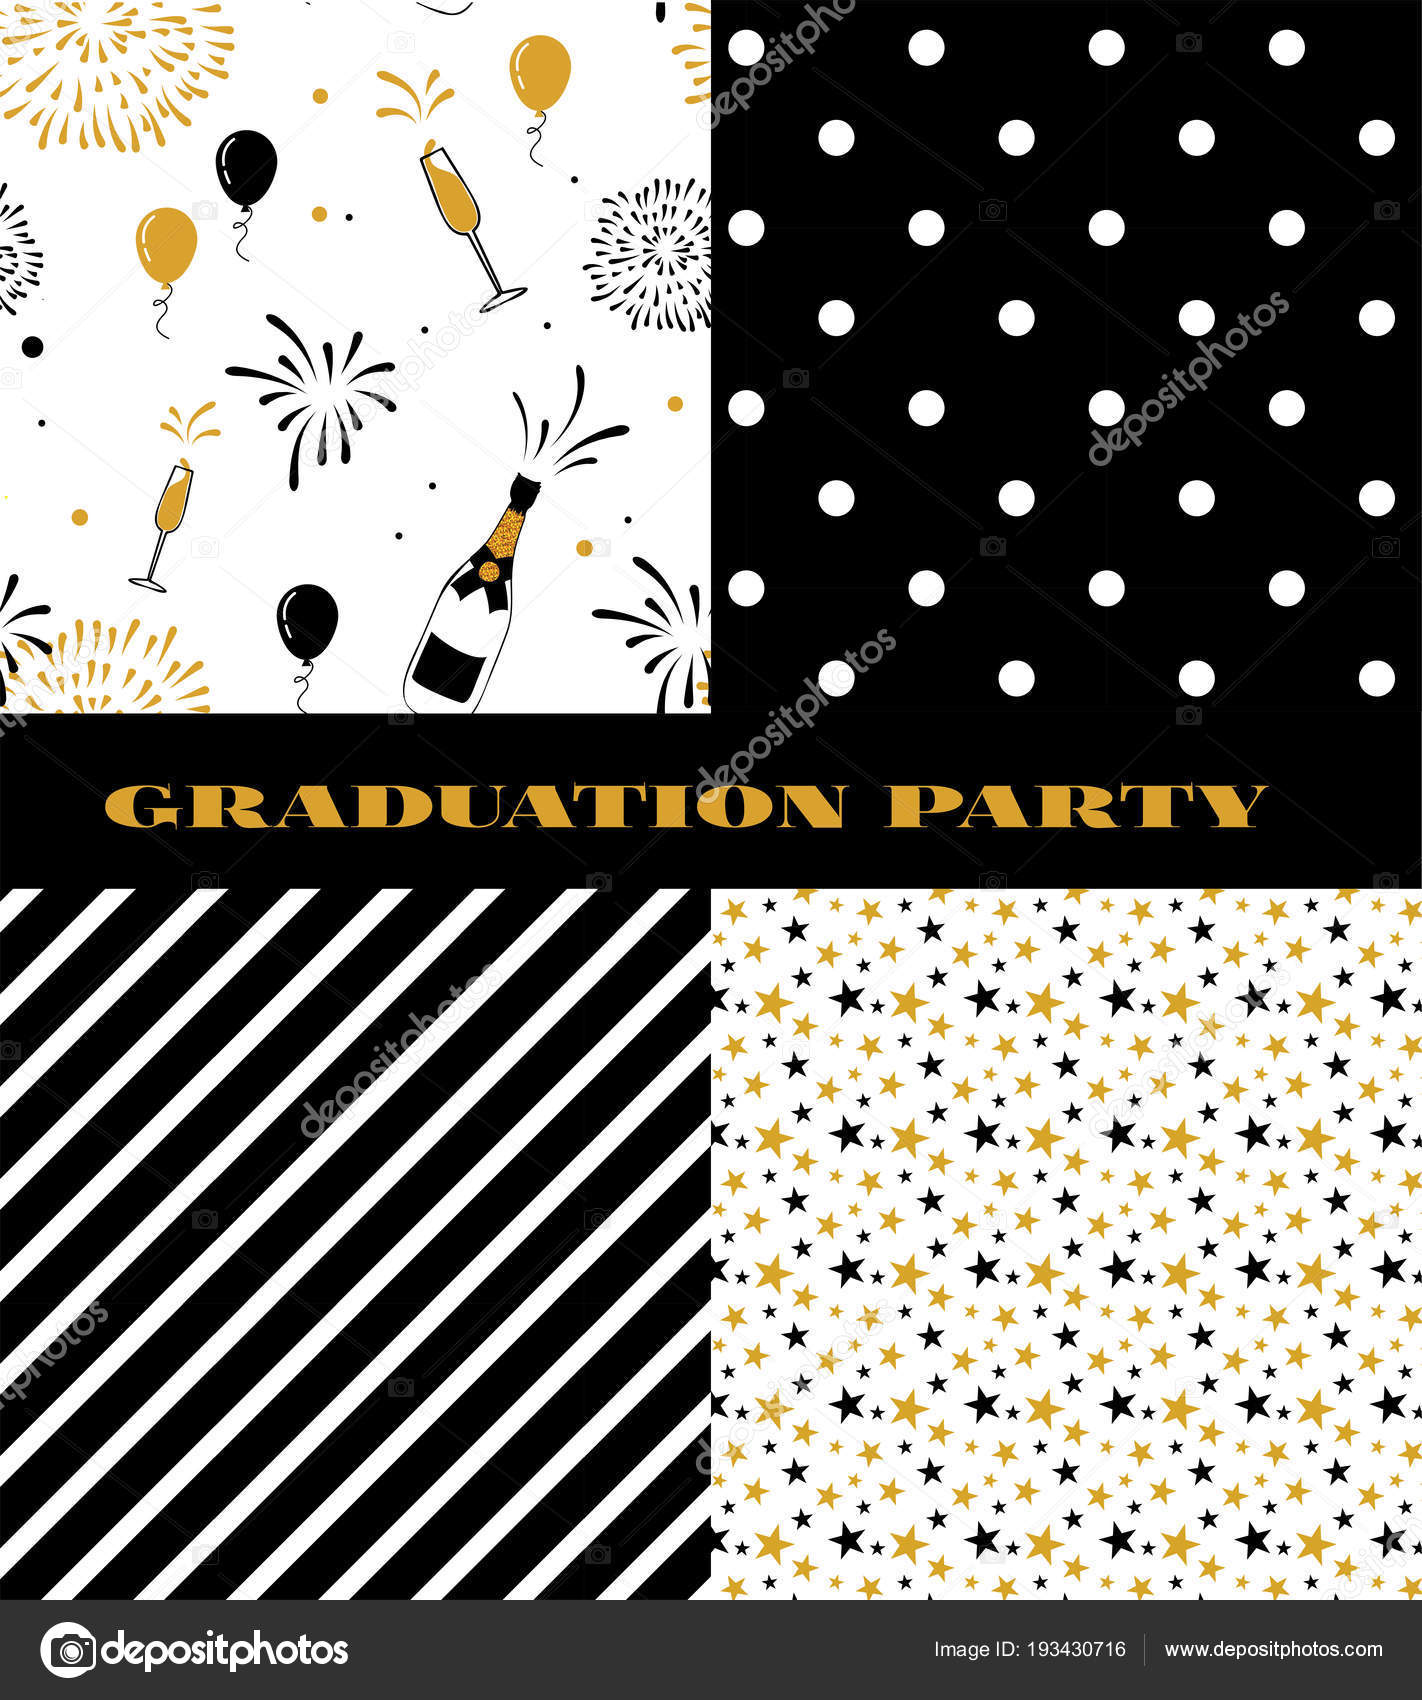 Graduation Pattern Collection Black And Golden Vector Background For Party Or Ceremony Invitation